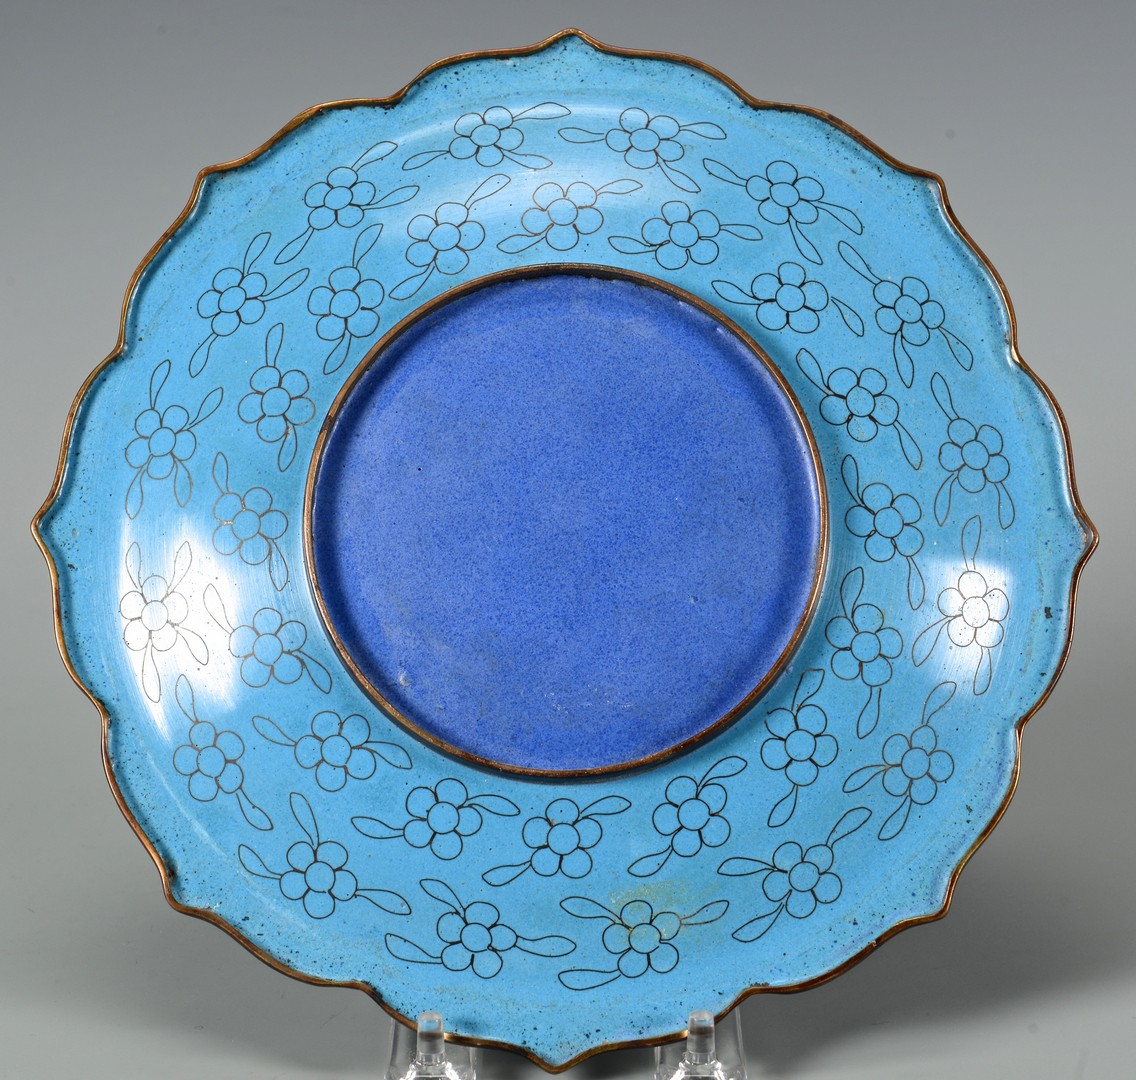 Lot 703: Cloisonne Plate and World's Fair Peacock Ewer